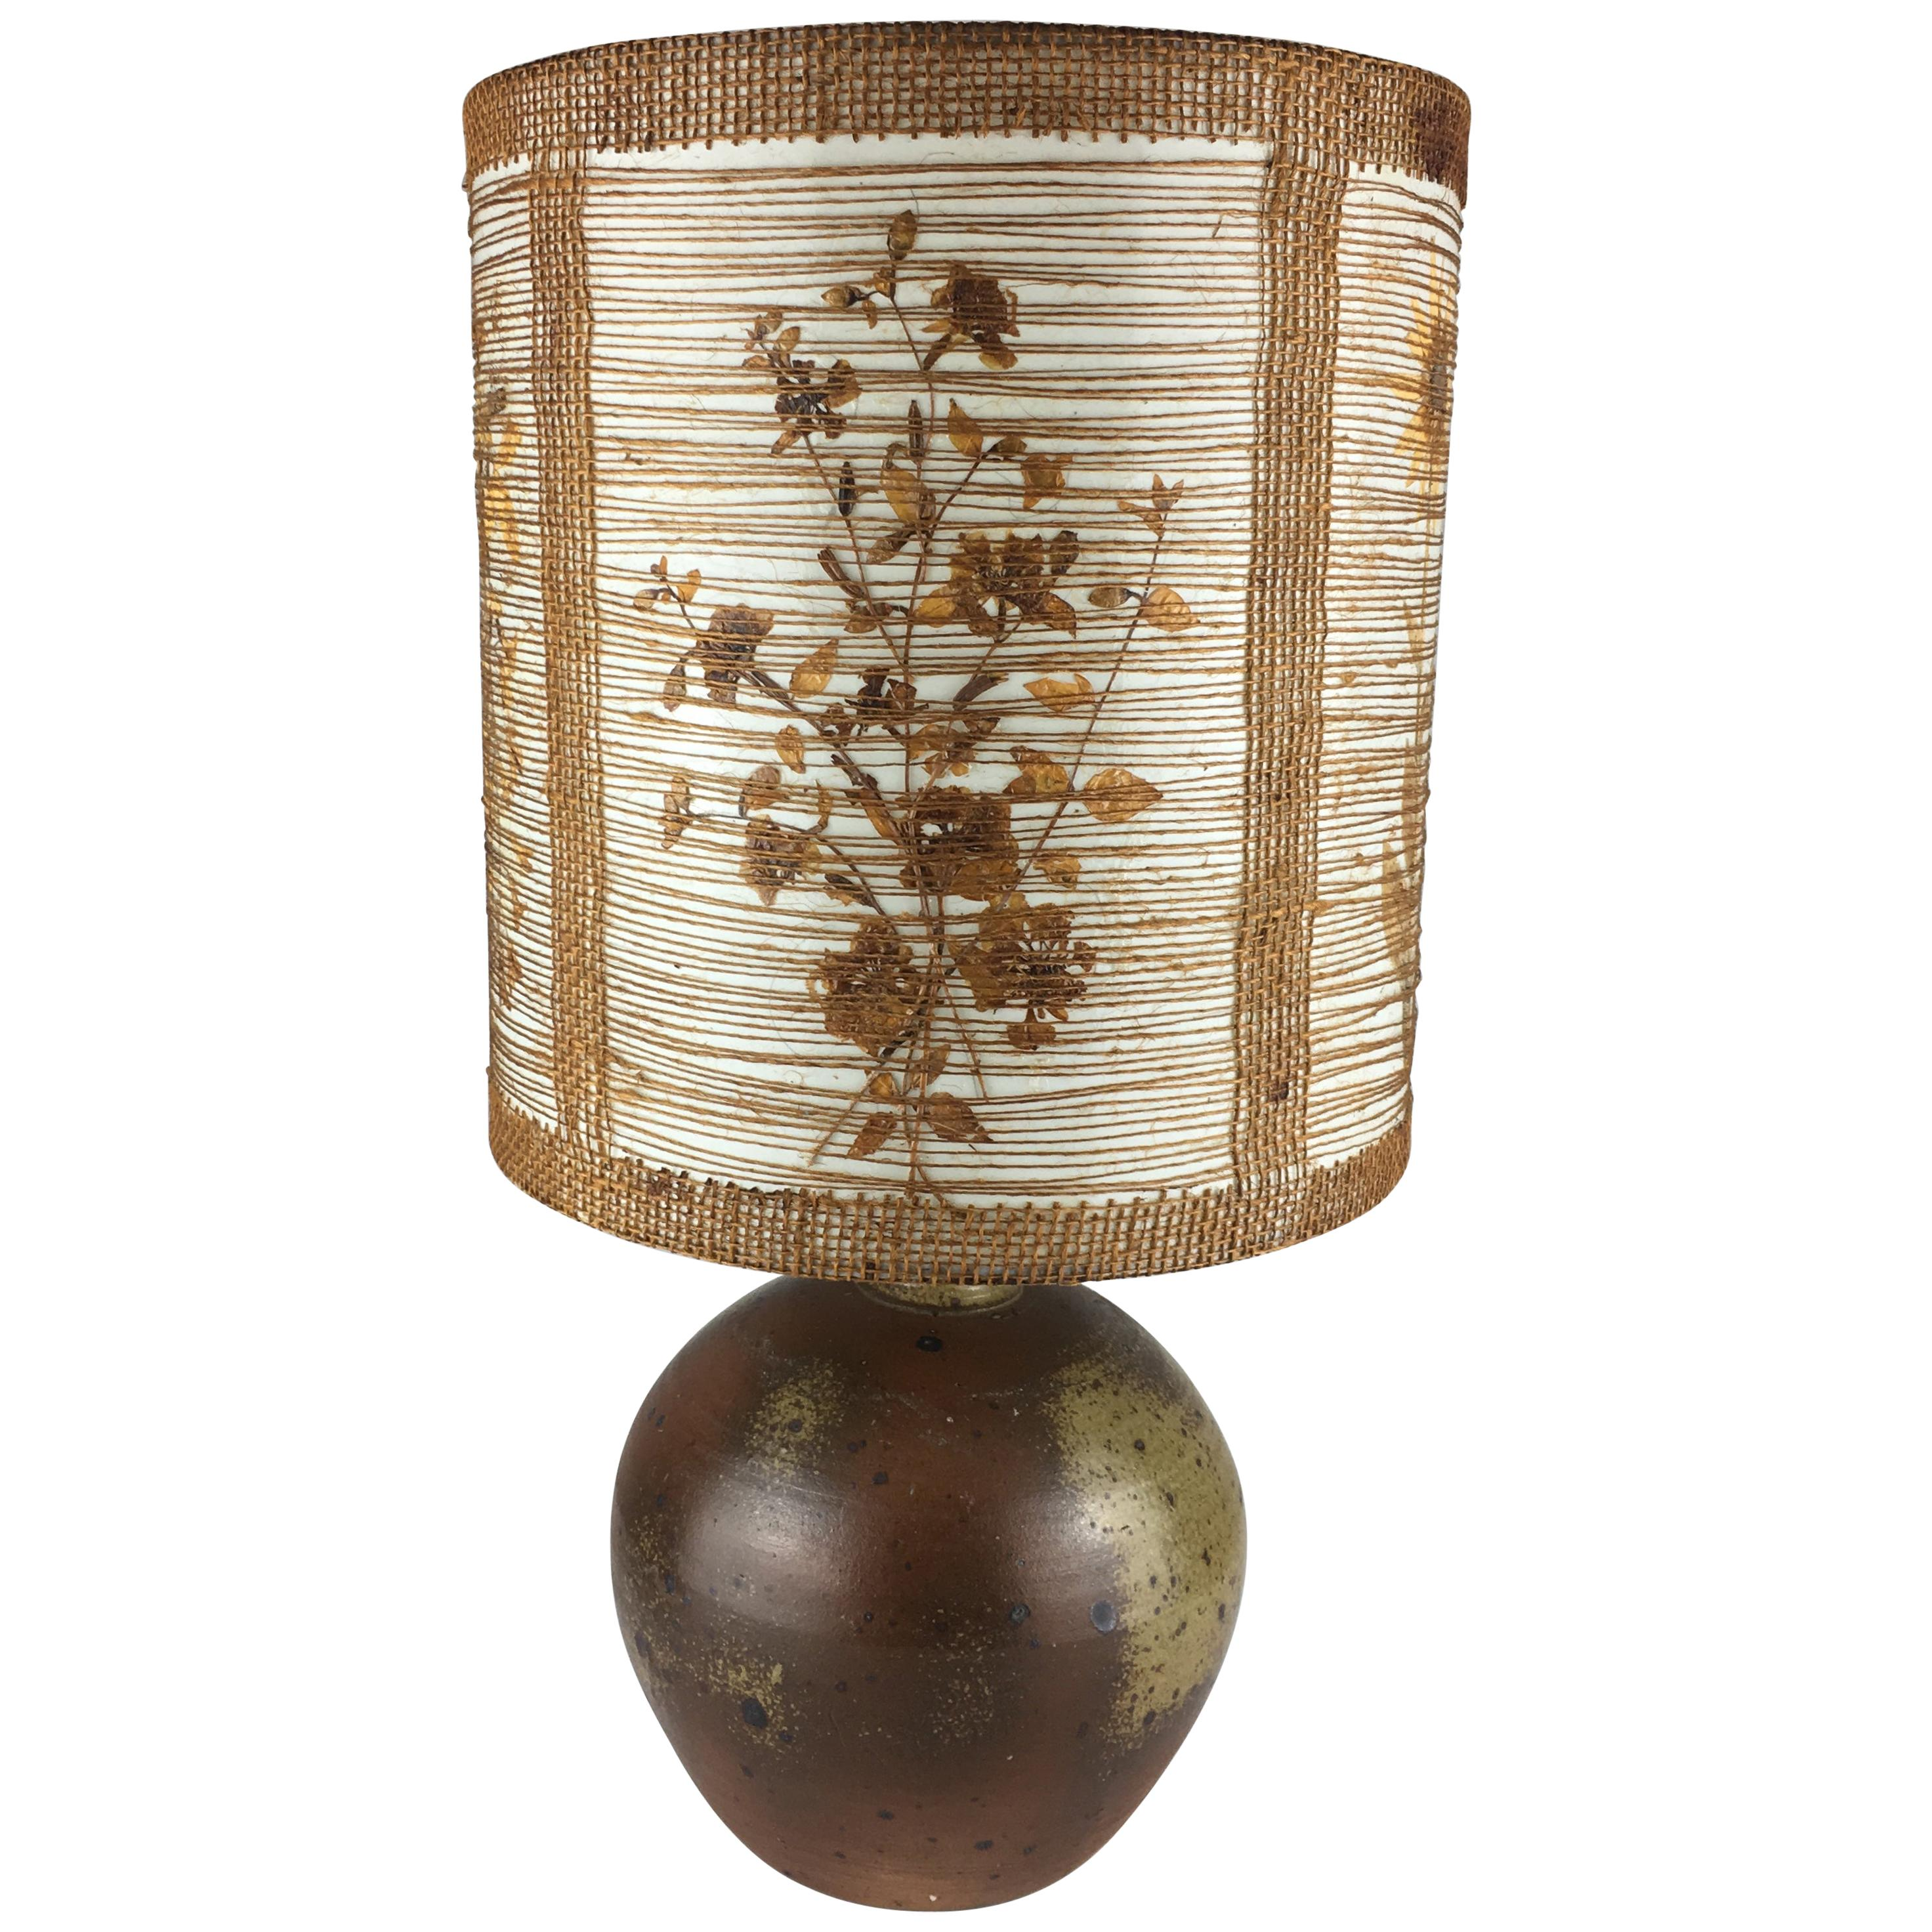 French Midcentury Earthenware Table Lamp, circa 1950s